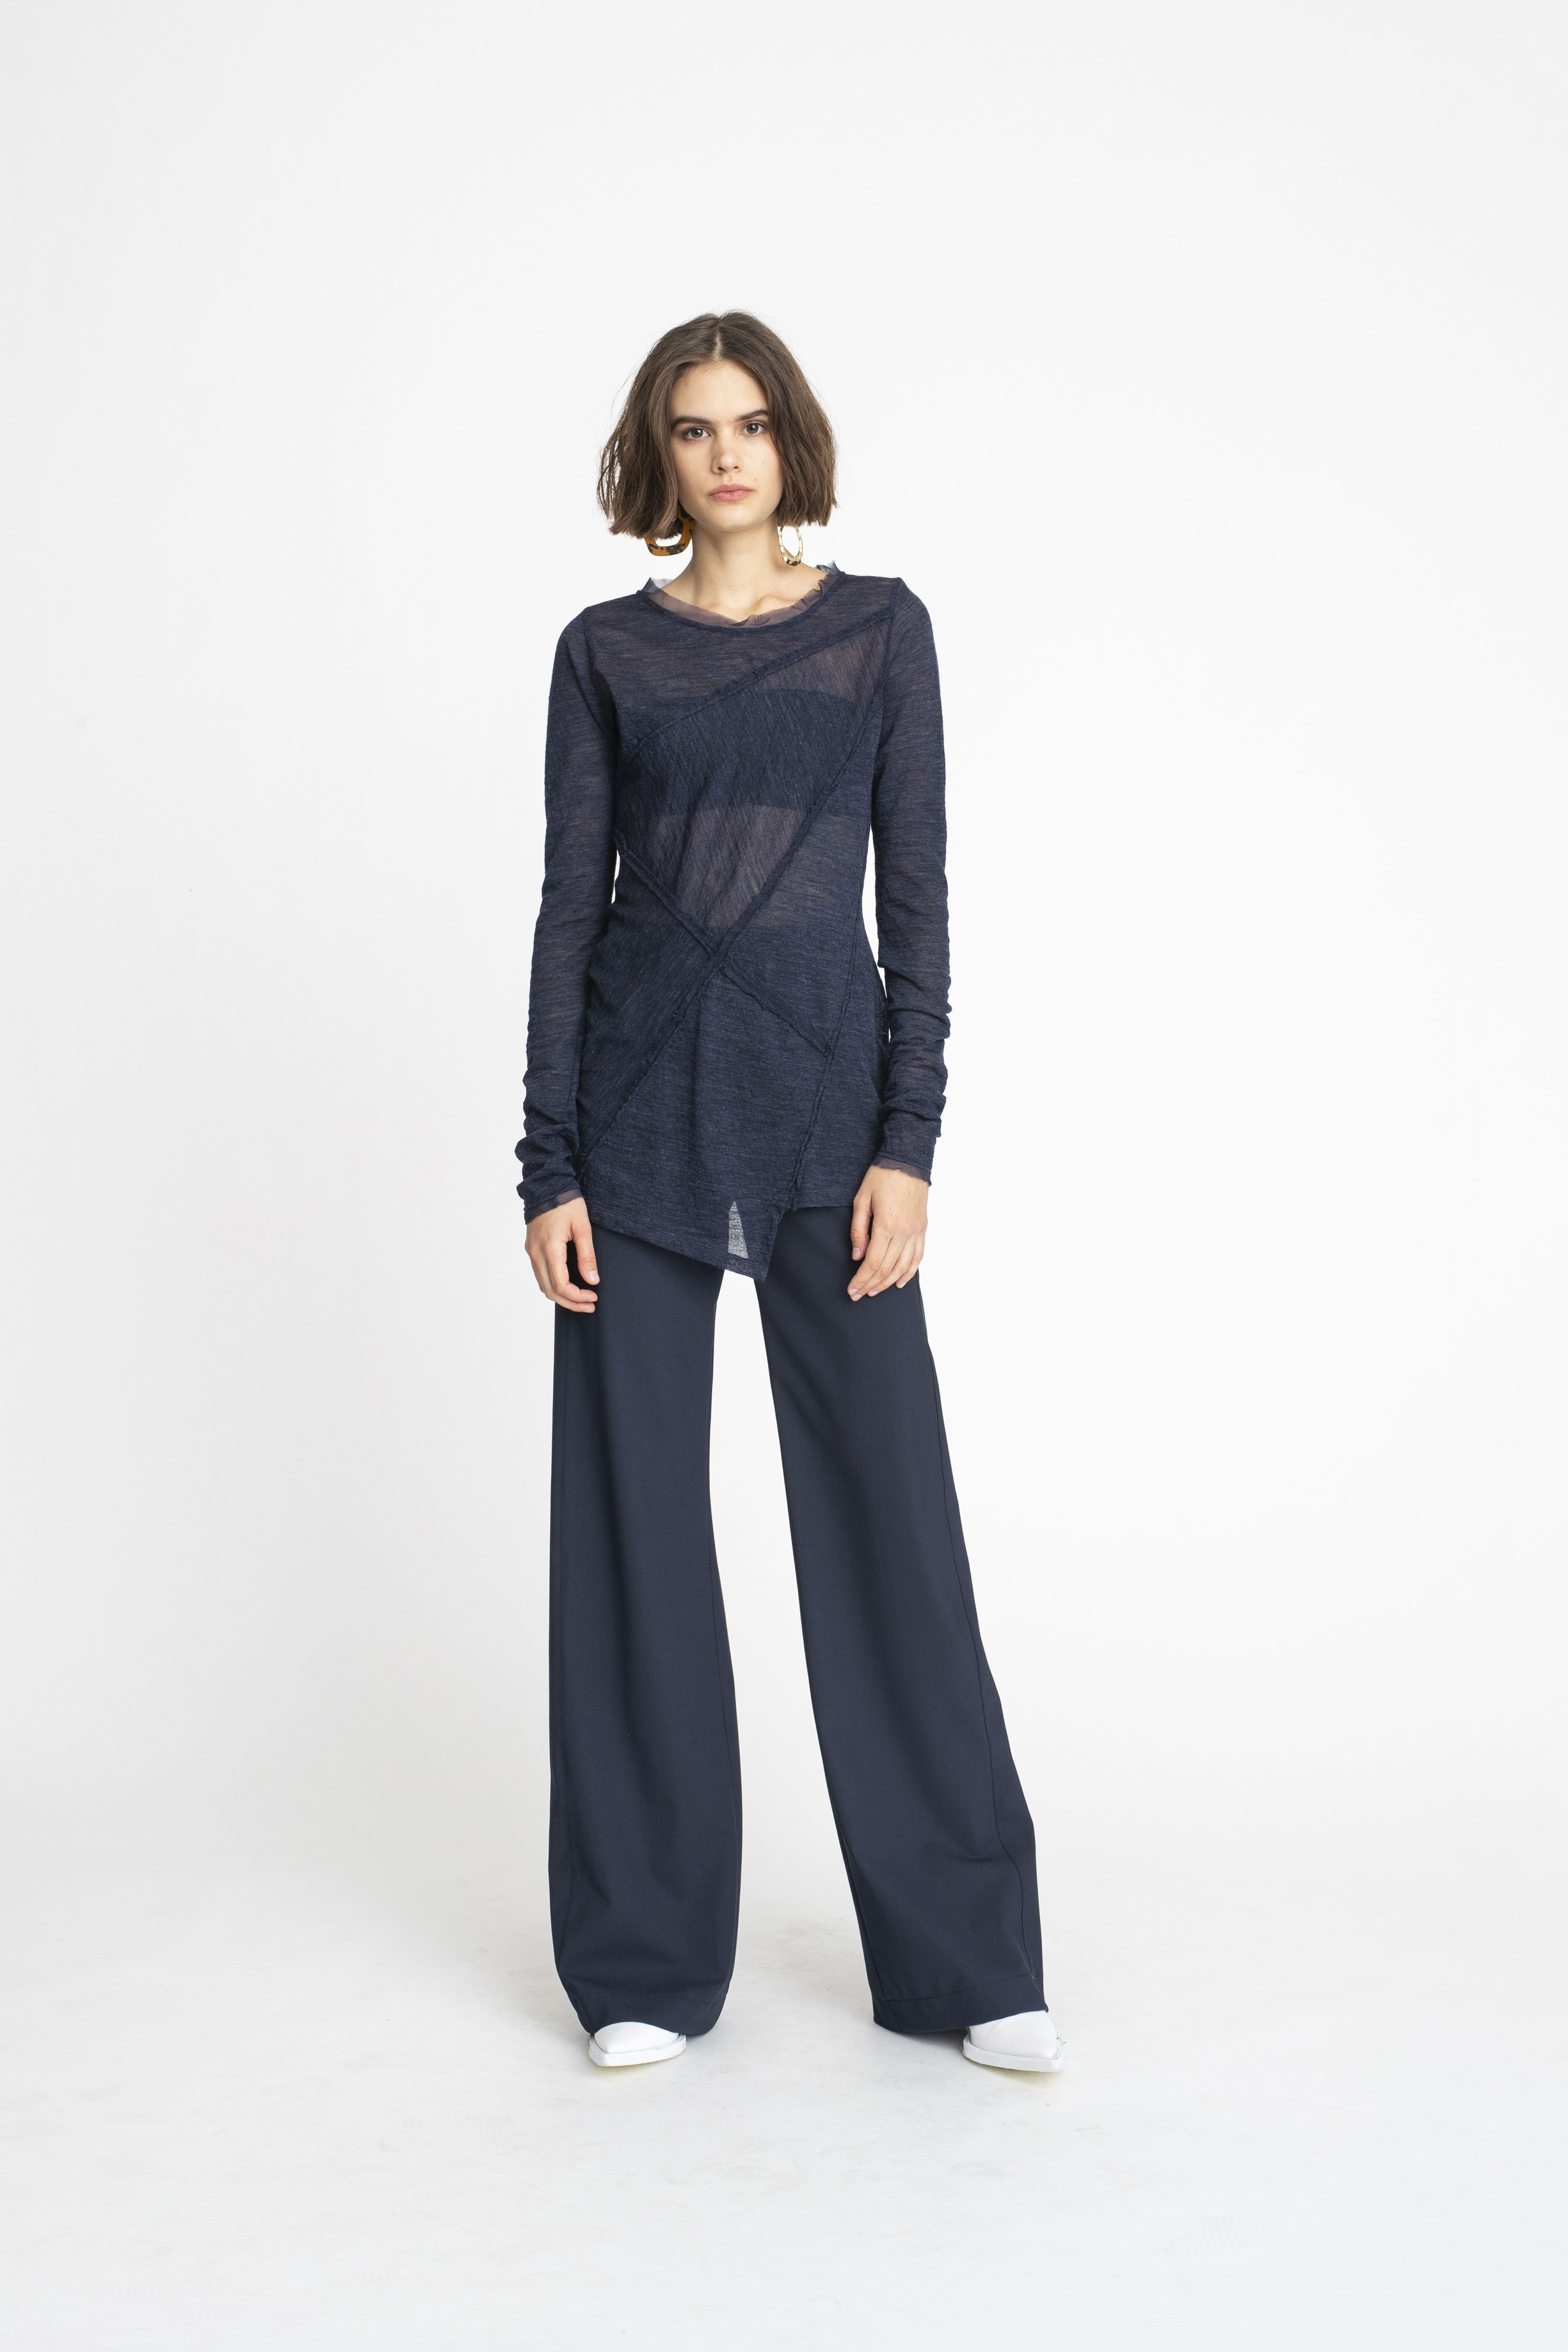 Mosaic-Tunic_Panelled-Joust-Pant_TaylorBoutique_AW19_L81_1895 2